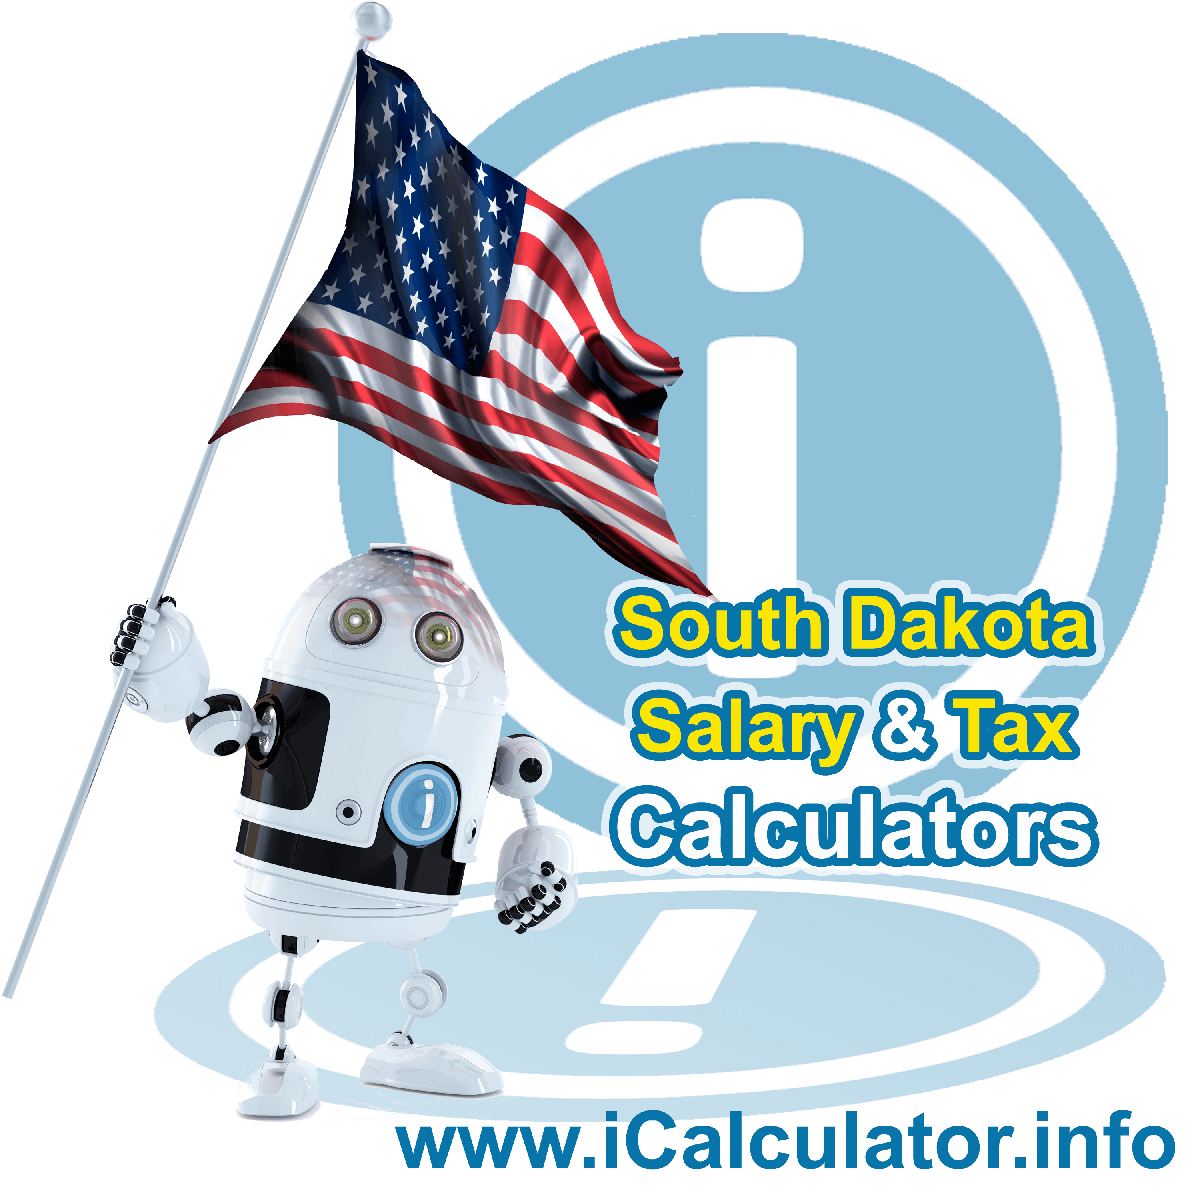 South Dakota Salary Calculator 2019 | iCalculator | The South Dakota Salary Calculator allows you to quickly calculate your salary after tax including South Dakota State Tax, Federal State Tax, Medicare Deductions, Social Security, Capital Gains and other income tax and salary deductions complete with supporting South Dakota state tax tables